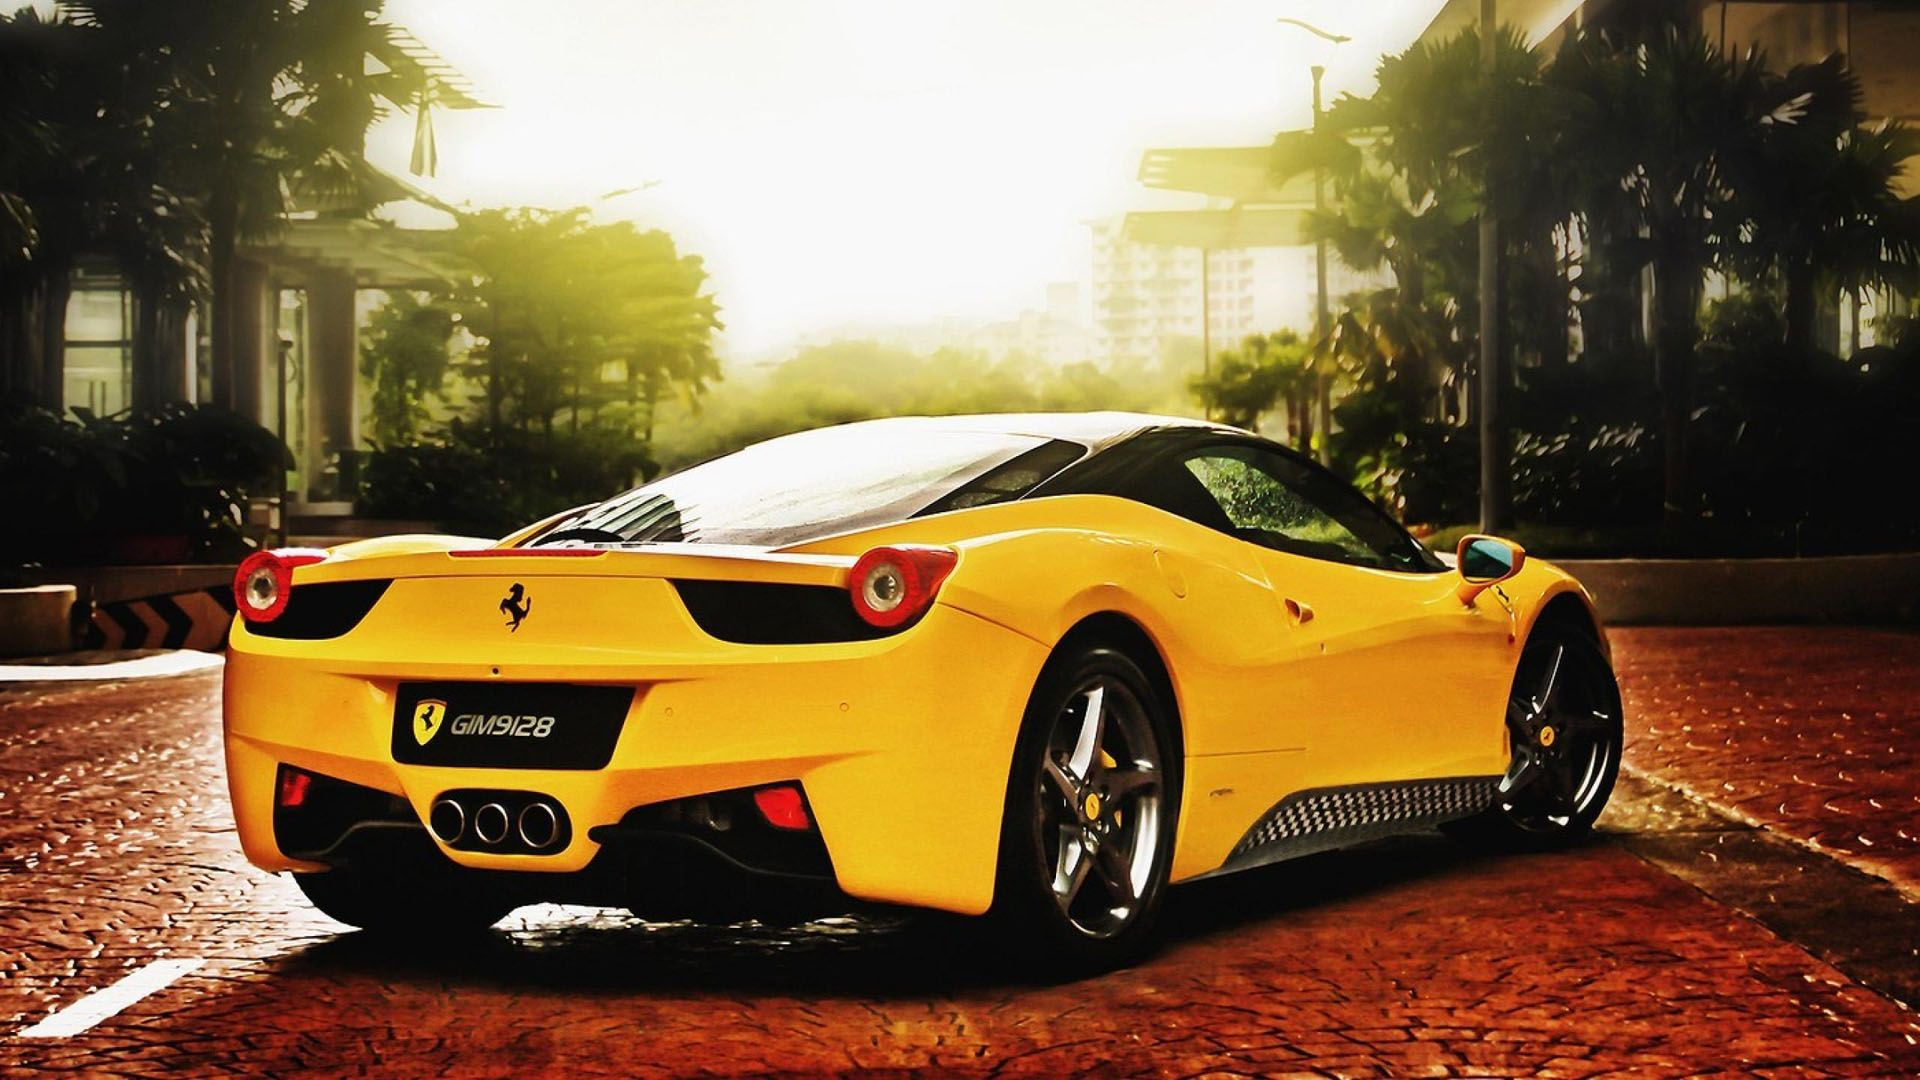 Super Yellow Ferrari HD Wallpaper   HD 1920x1080